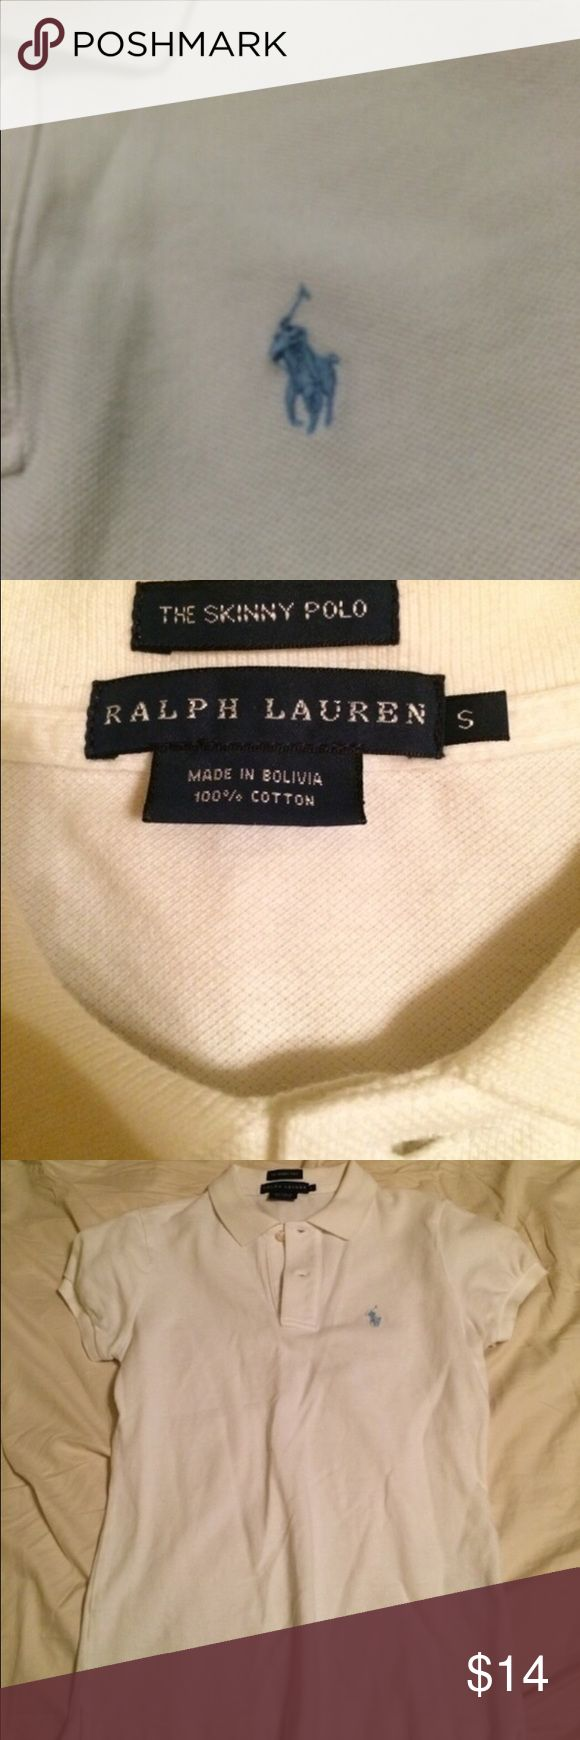 White Polo Ralph Lauren 2 button. Skinny fit. Polo by Ralph Lauren.  #polo #ralphlauren #summer #poloshirt Polo by Ralph Lauren Tops